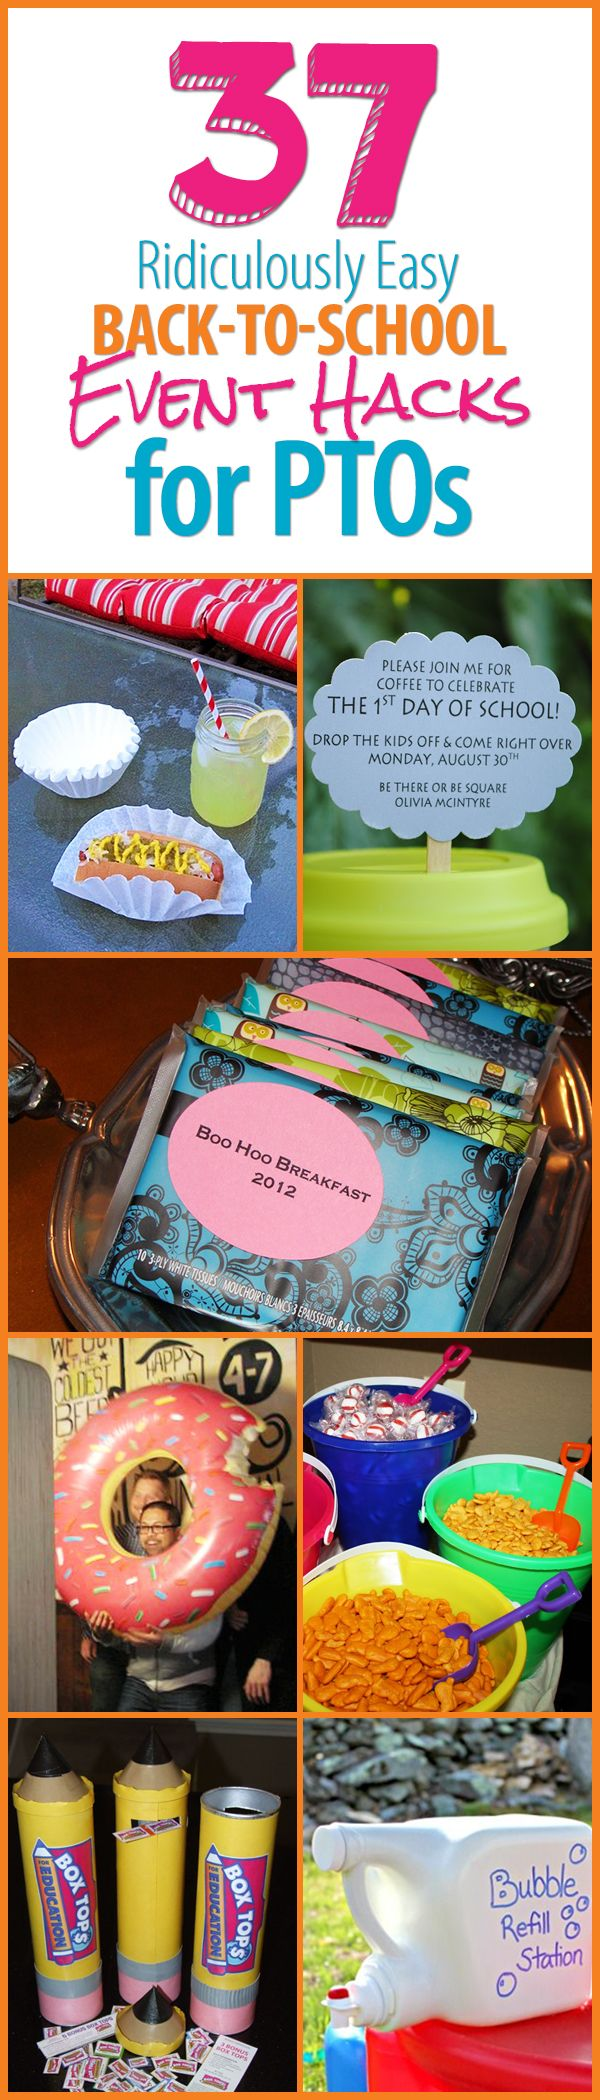 37 Ridiculously Easy Back-to-School Event Hacks for PTOs